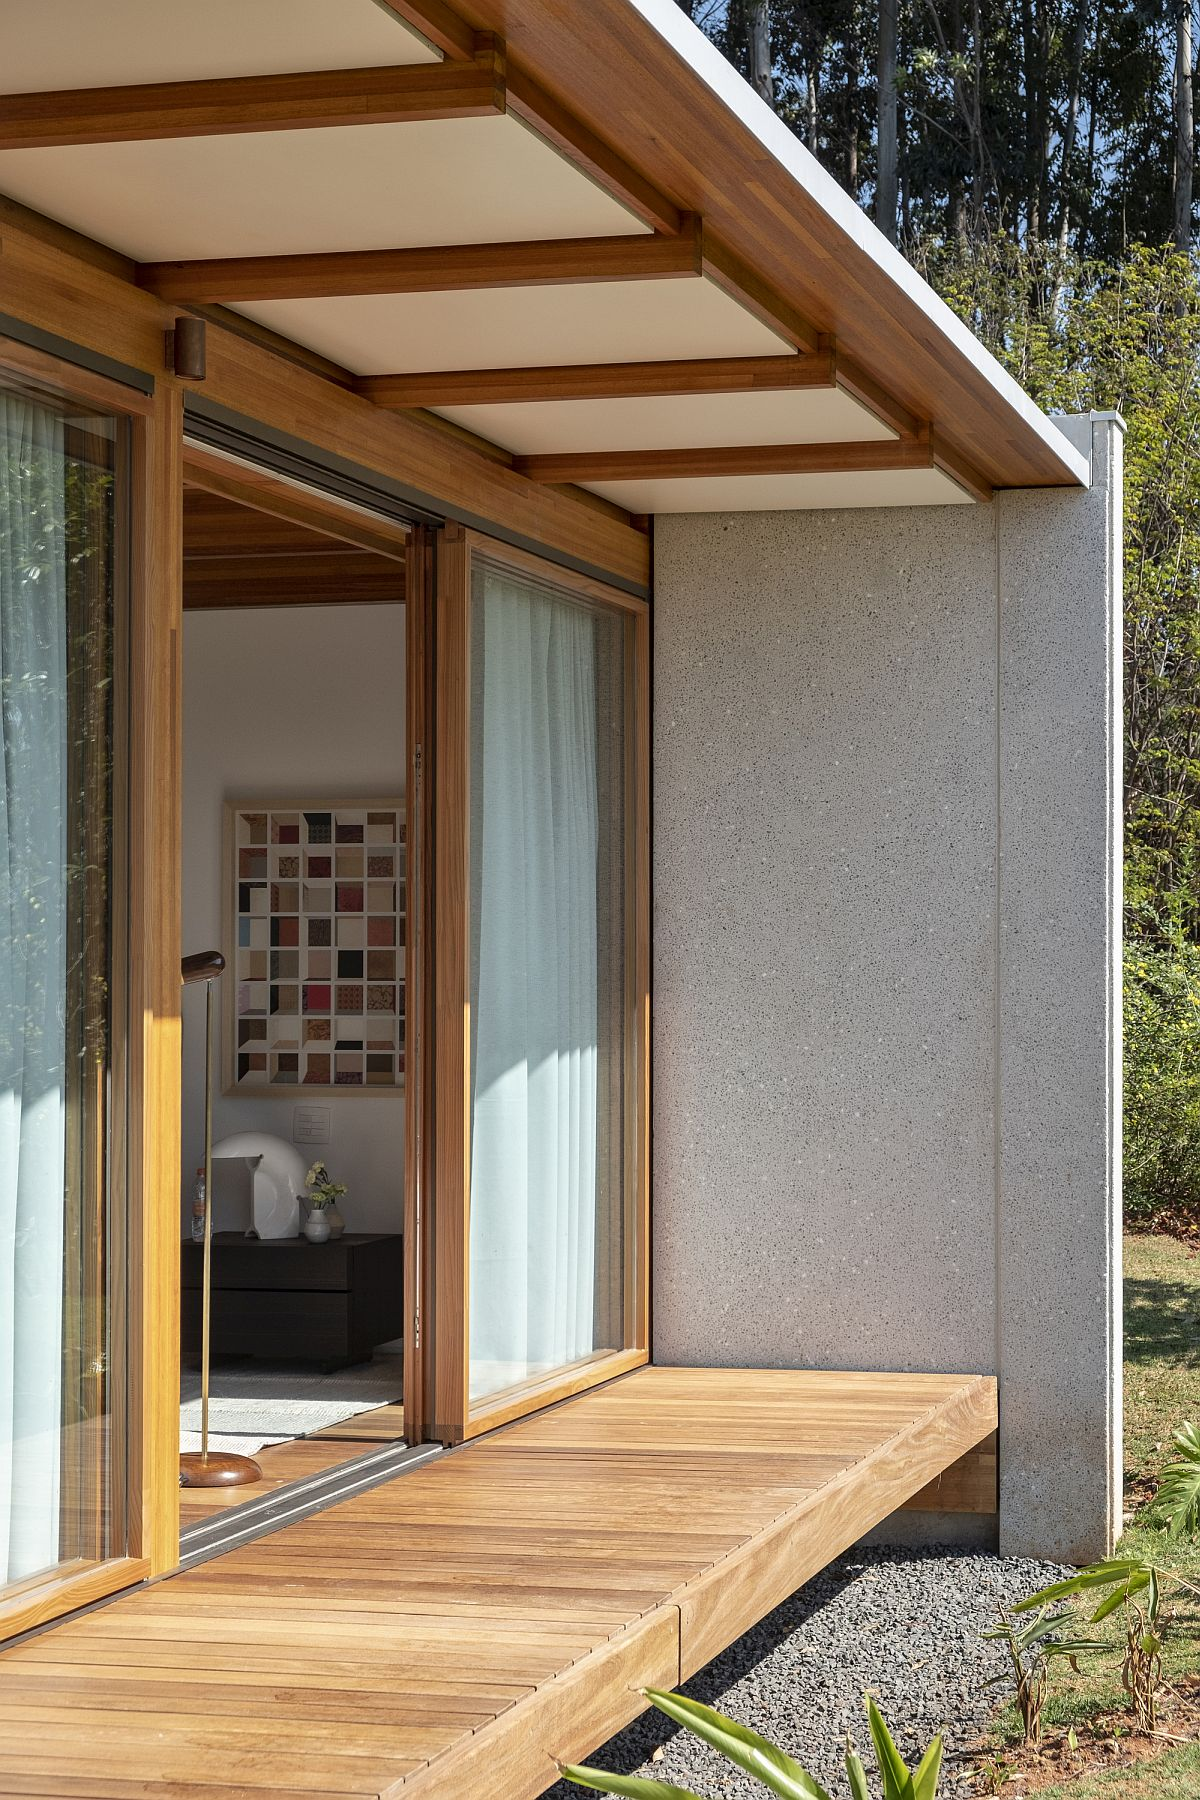 Drapes-coupled-with-sliding-doors-allow-those-inside-to-switch-between-privacy-and-unabated-views-41241